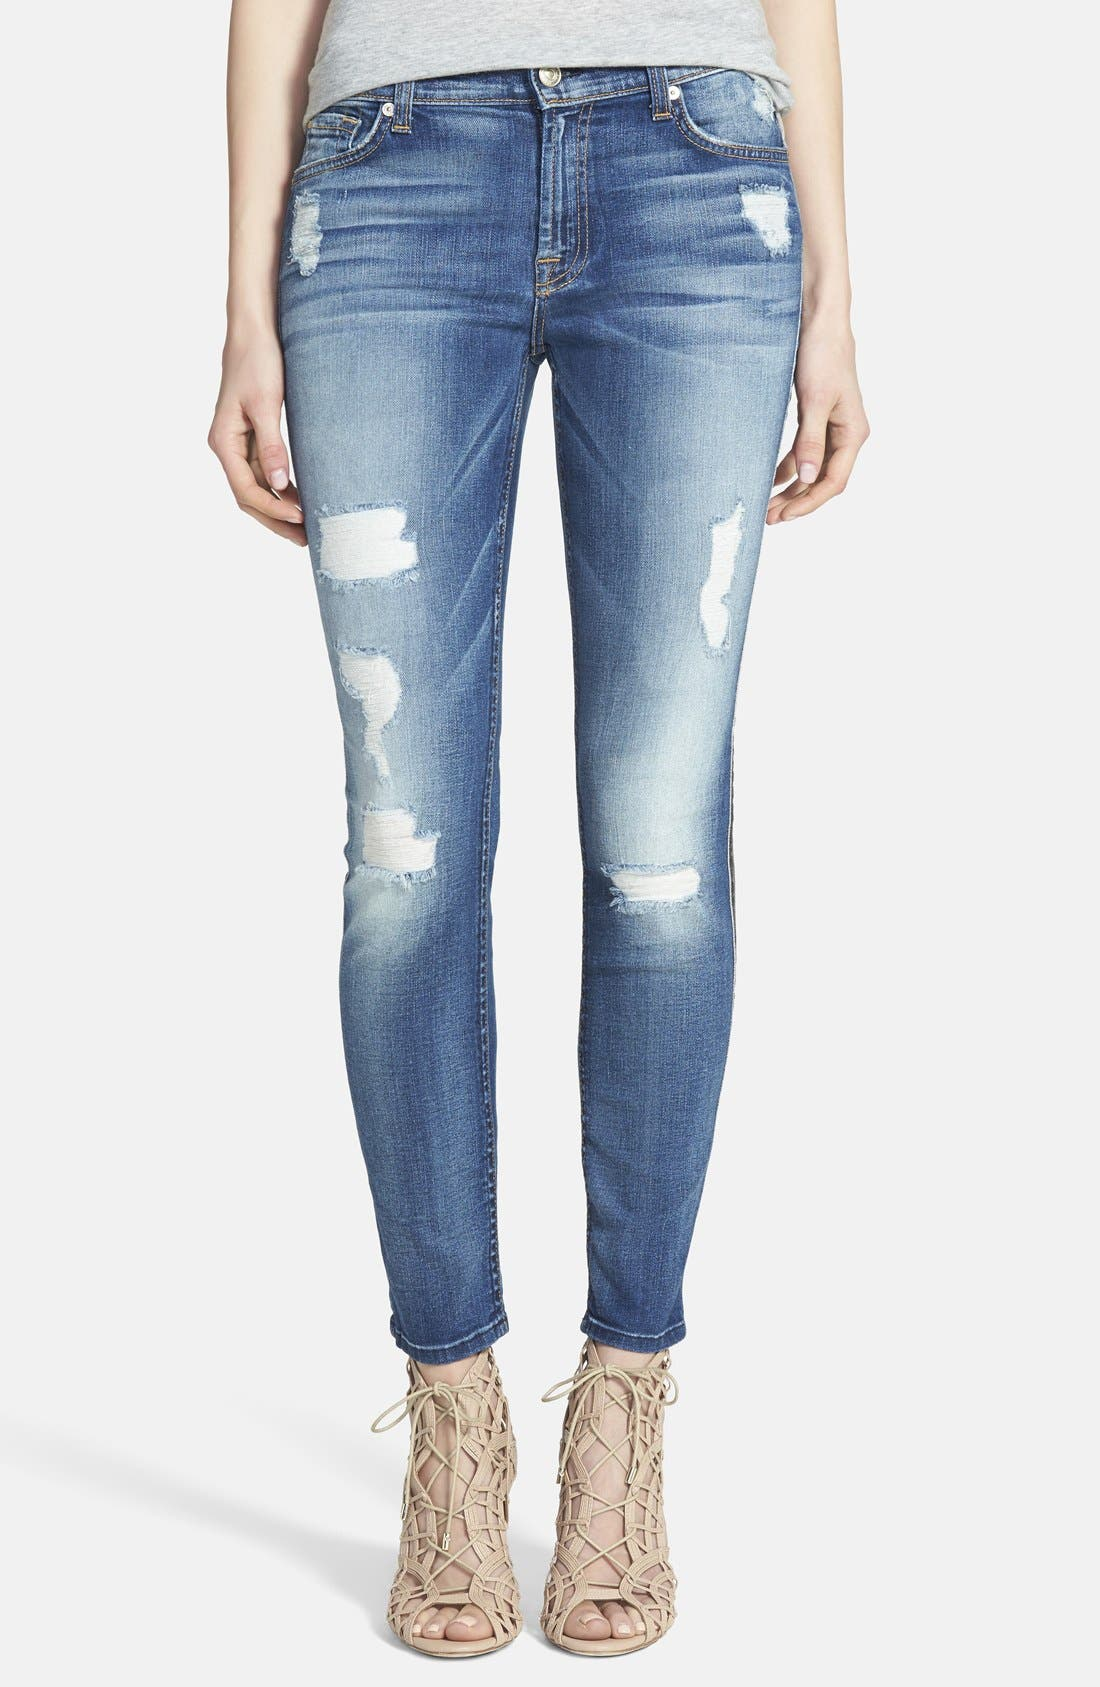 Seven distressed skinny jeans